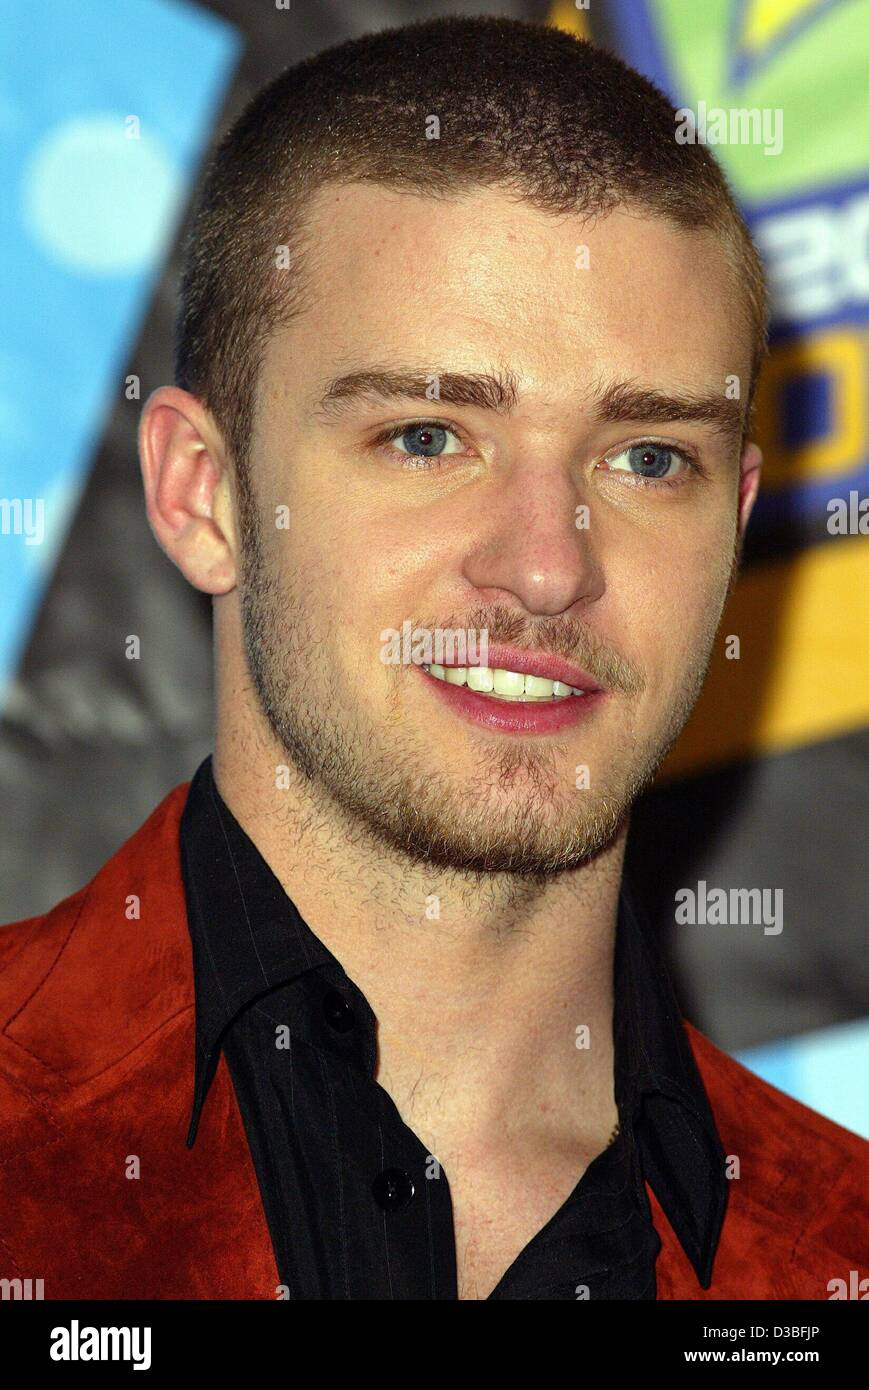 (dpa files) - 'N Sync singer Justin Timberlake smiles during the MTV Movie Awards in Los Angeles, 31 May 2003. - Stock Image